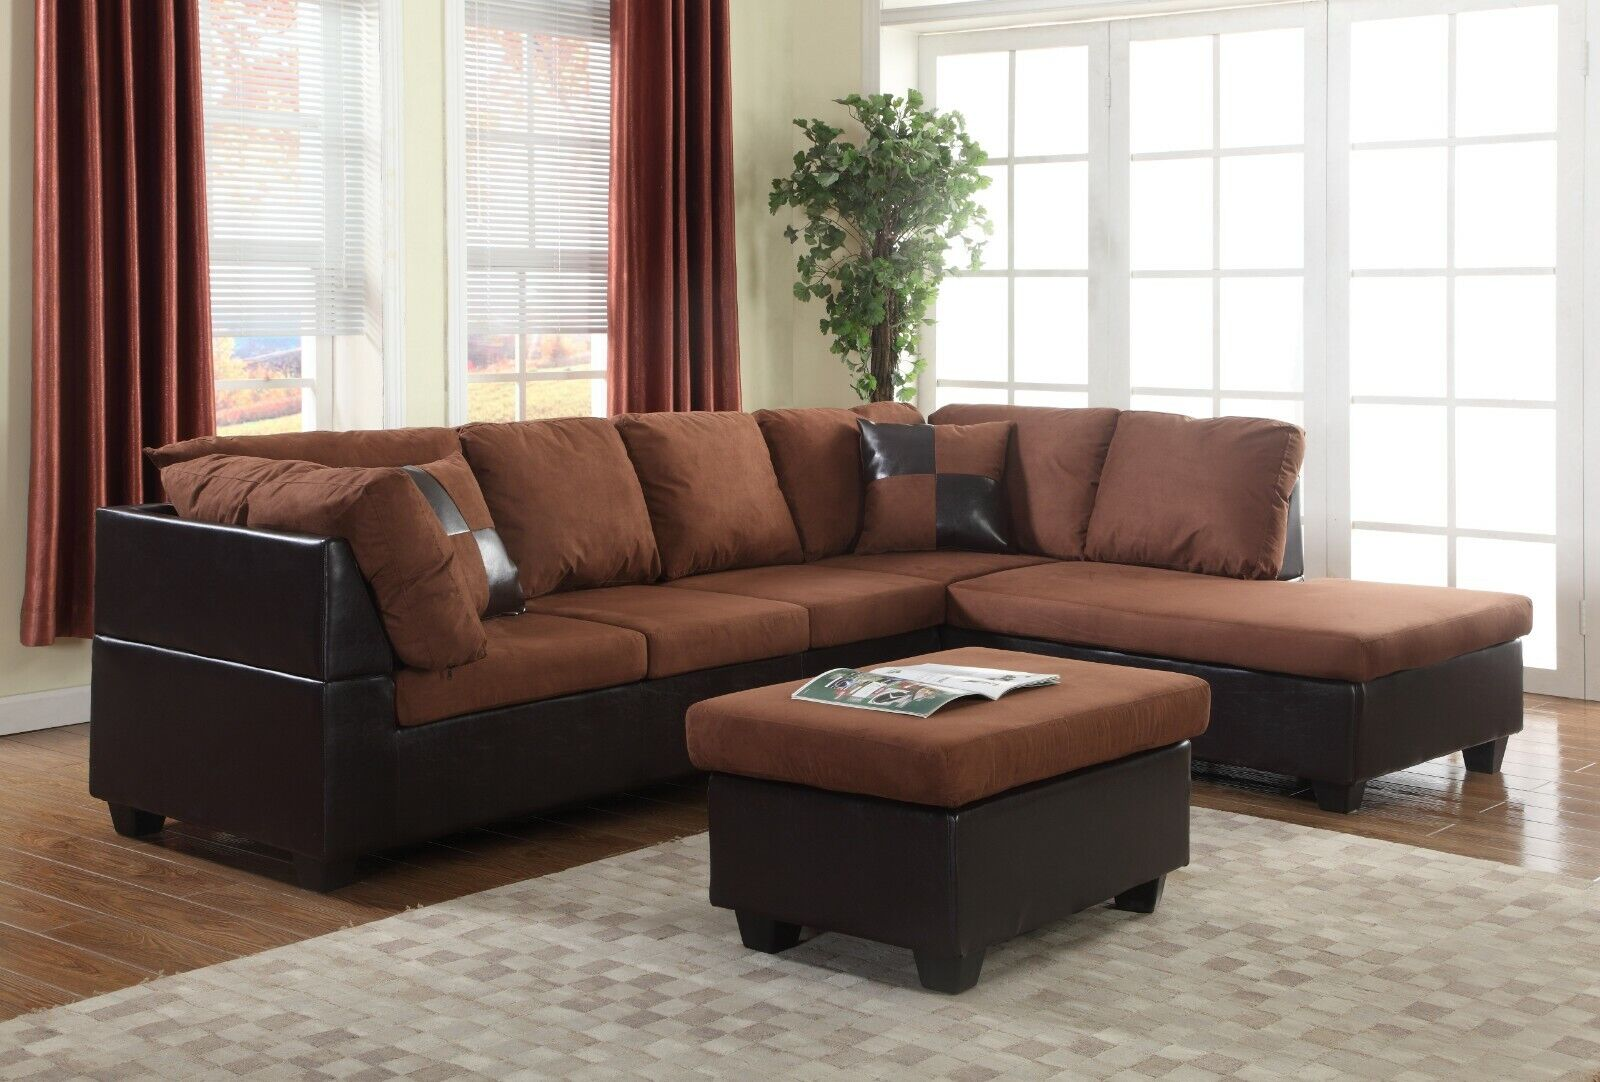 Living Room Set Chocolate Microfiber Faux Leather Sectional Sofa, Free  Shipping!